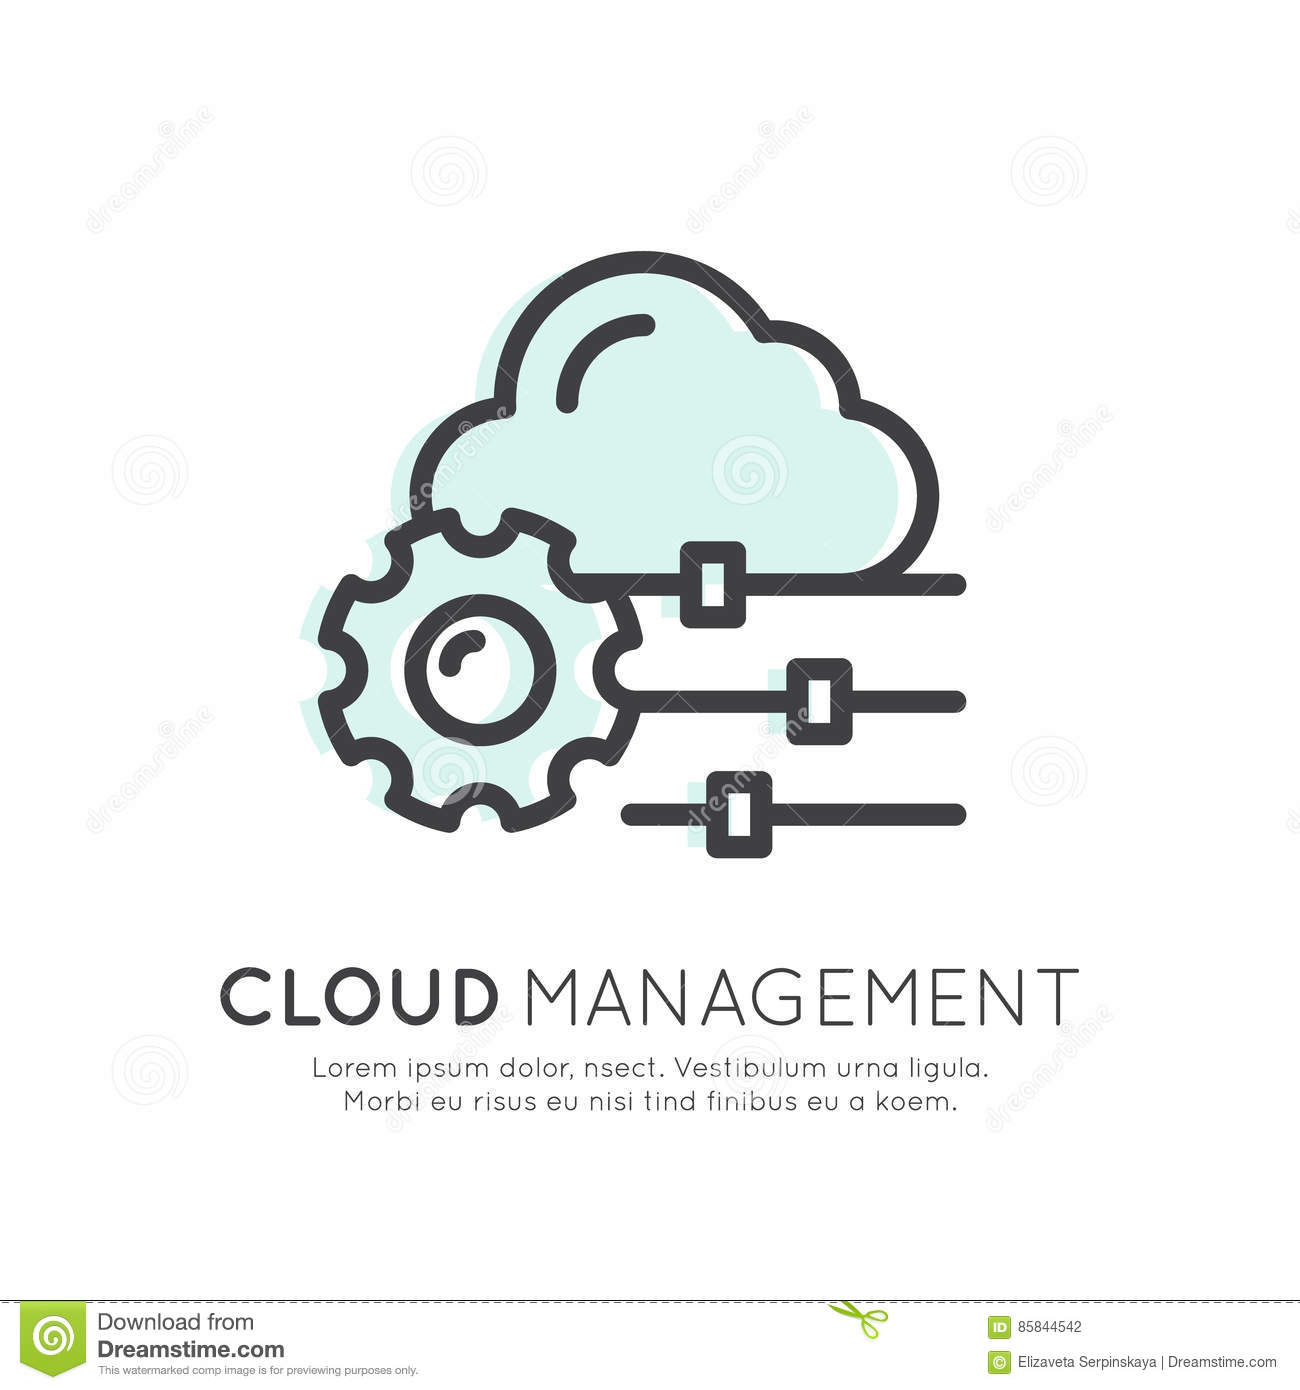 Wolken-Komputertechnologie-, Hosting-, Wolken-Management-, Datensicherheits-, Server-Speicher-, API-, Mobile-und Desktop-Gedächtn